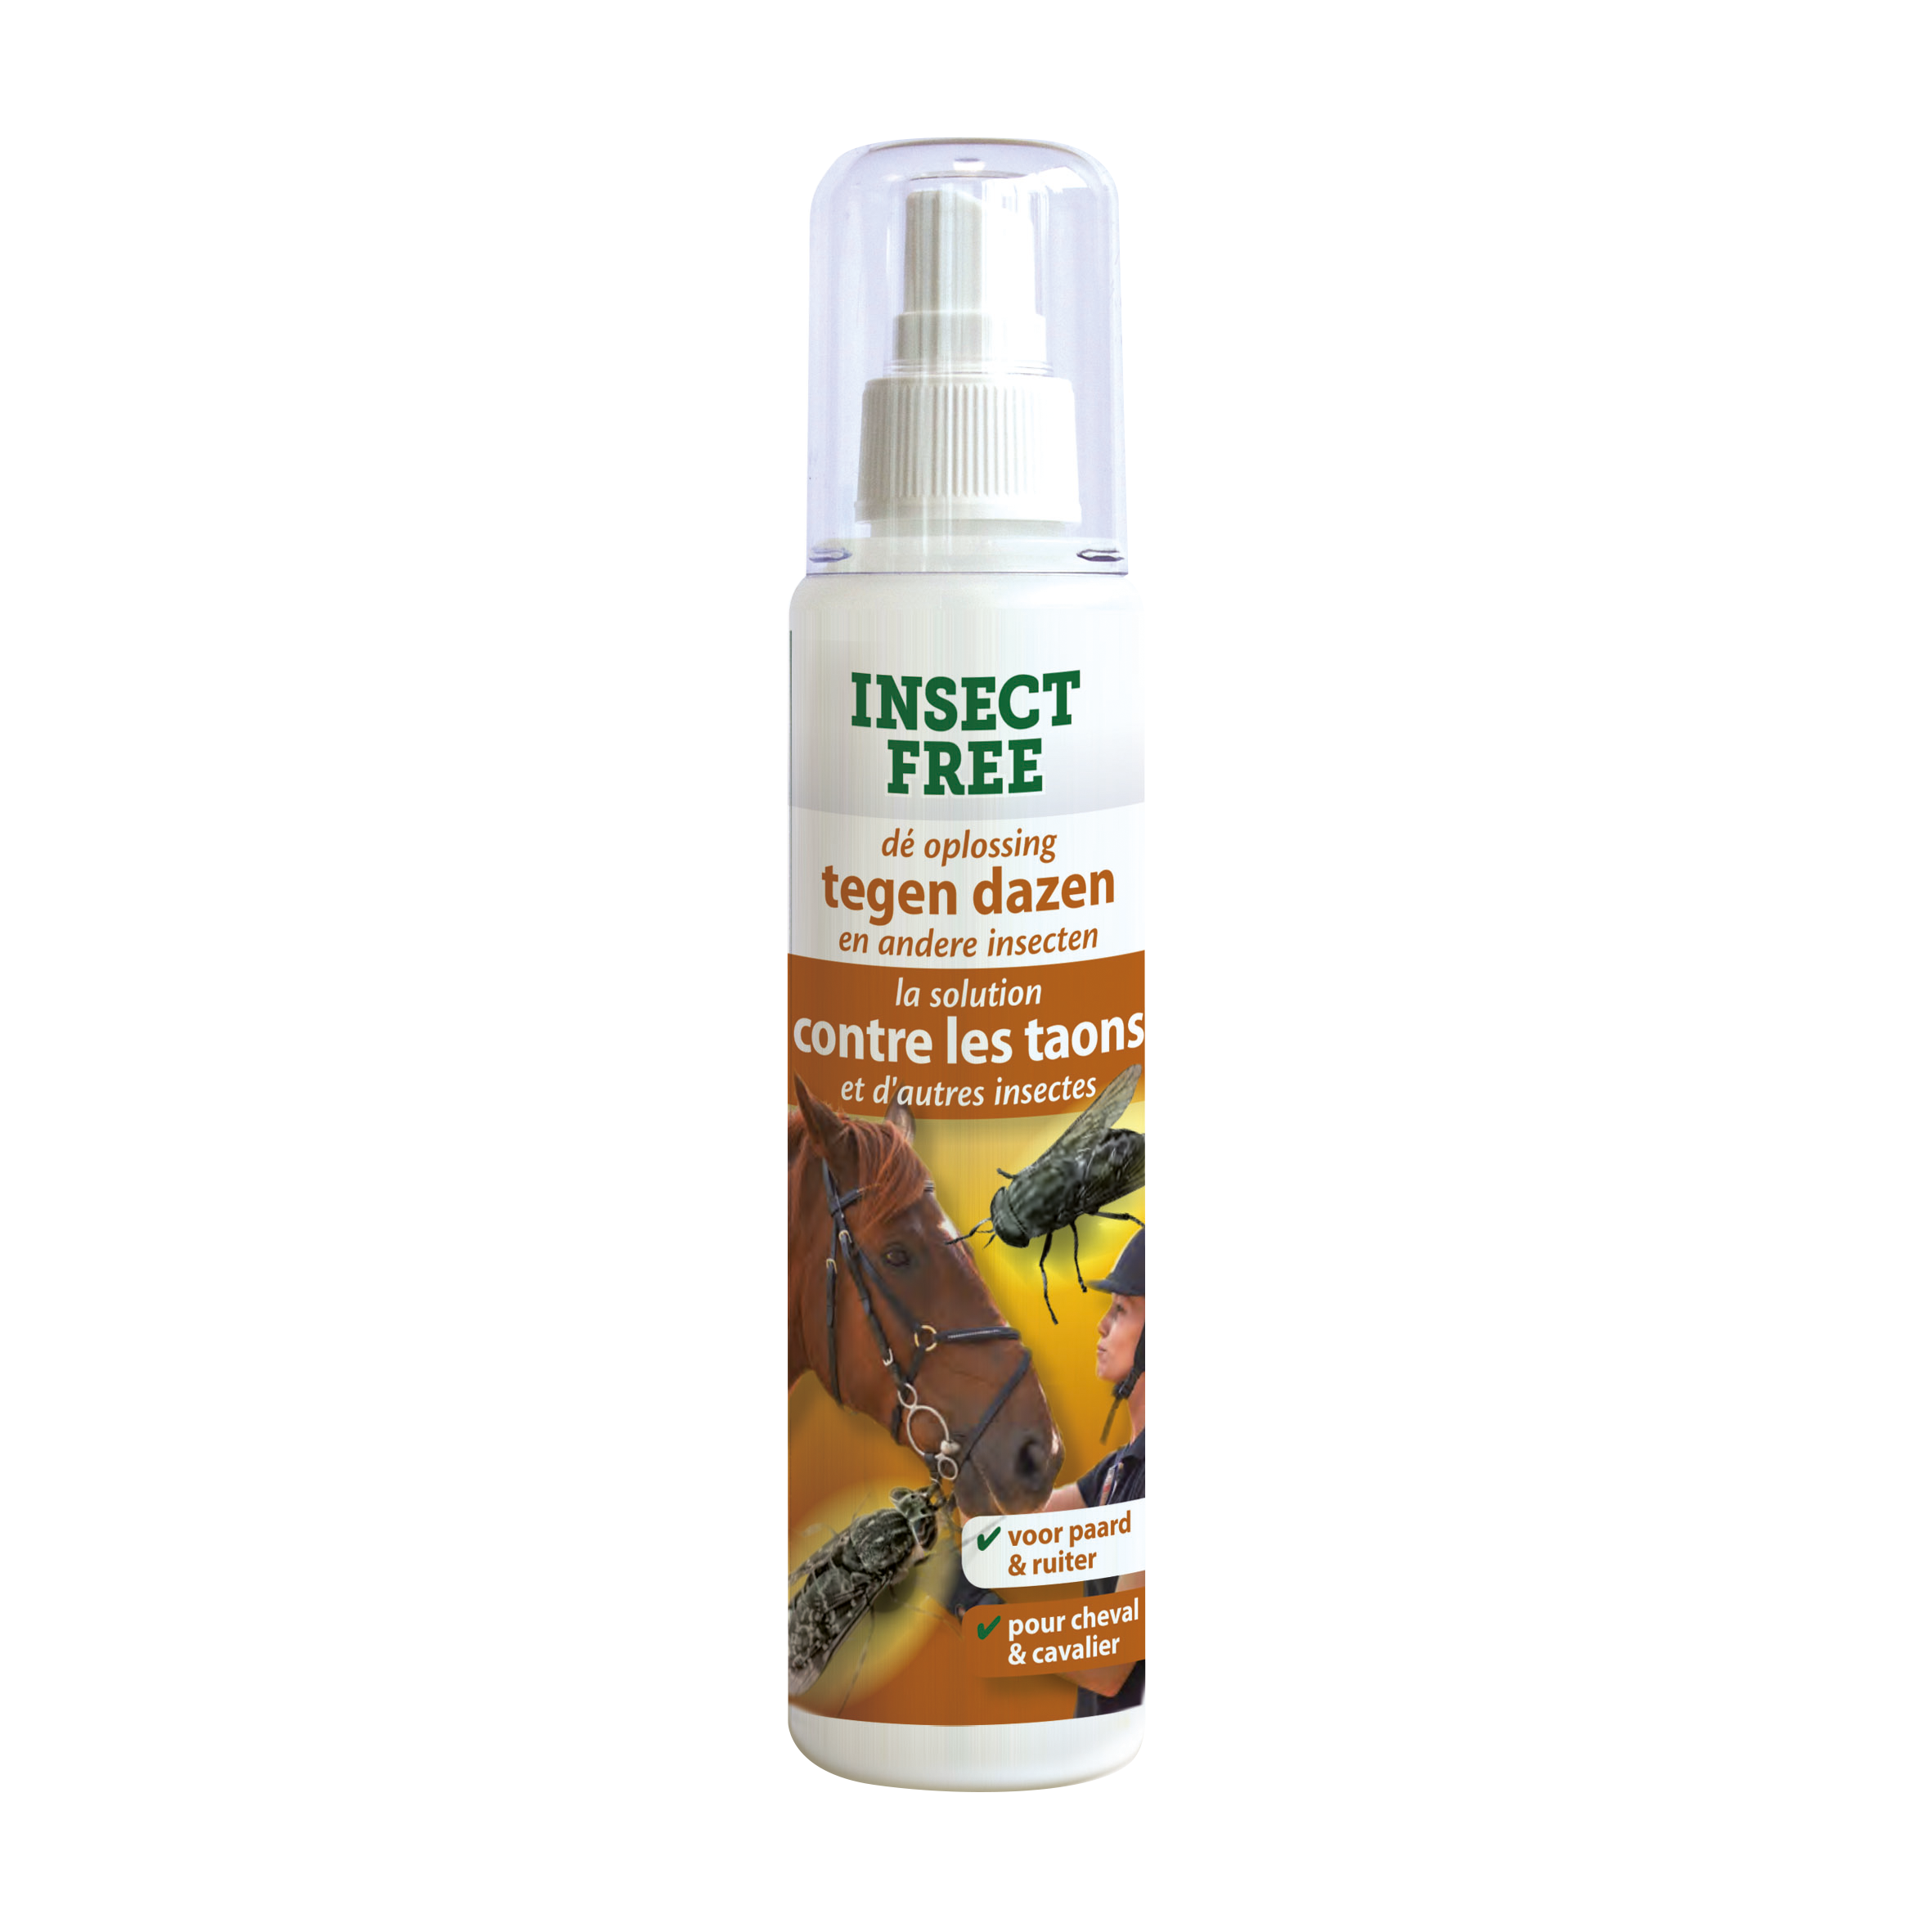 Insect Free 200 ml NOTIF799 image